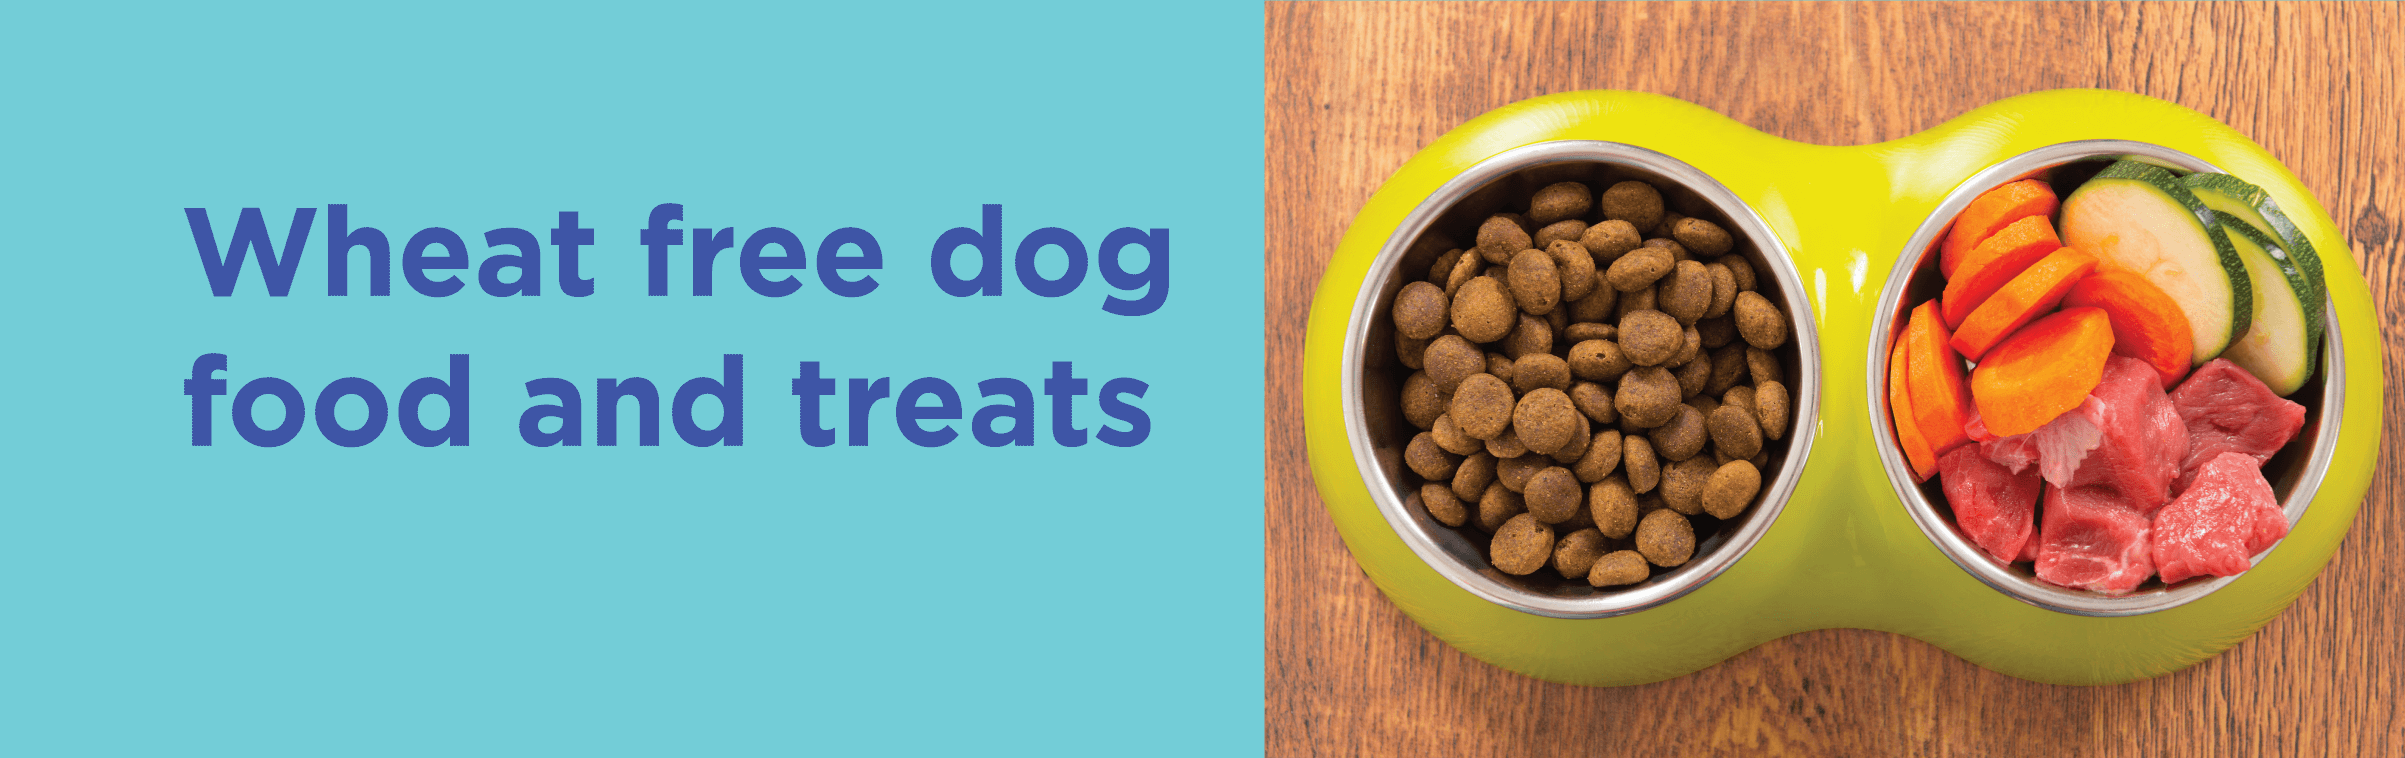 Wheat free dog food and treats